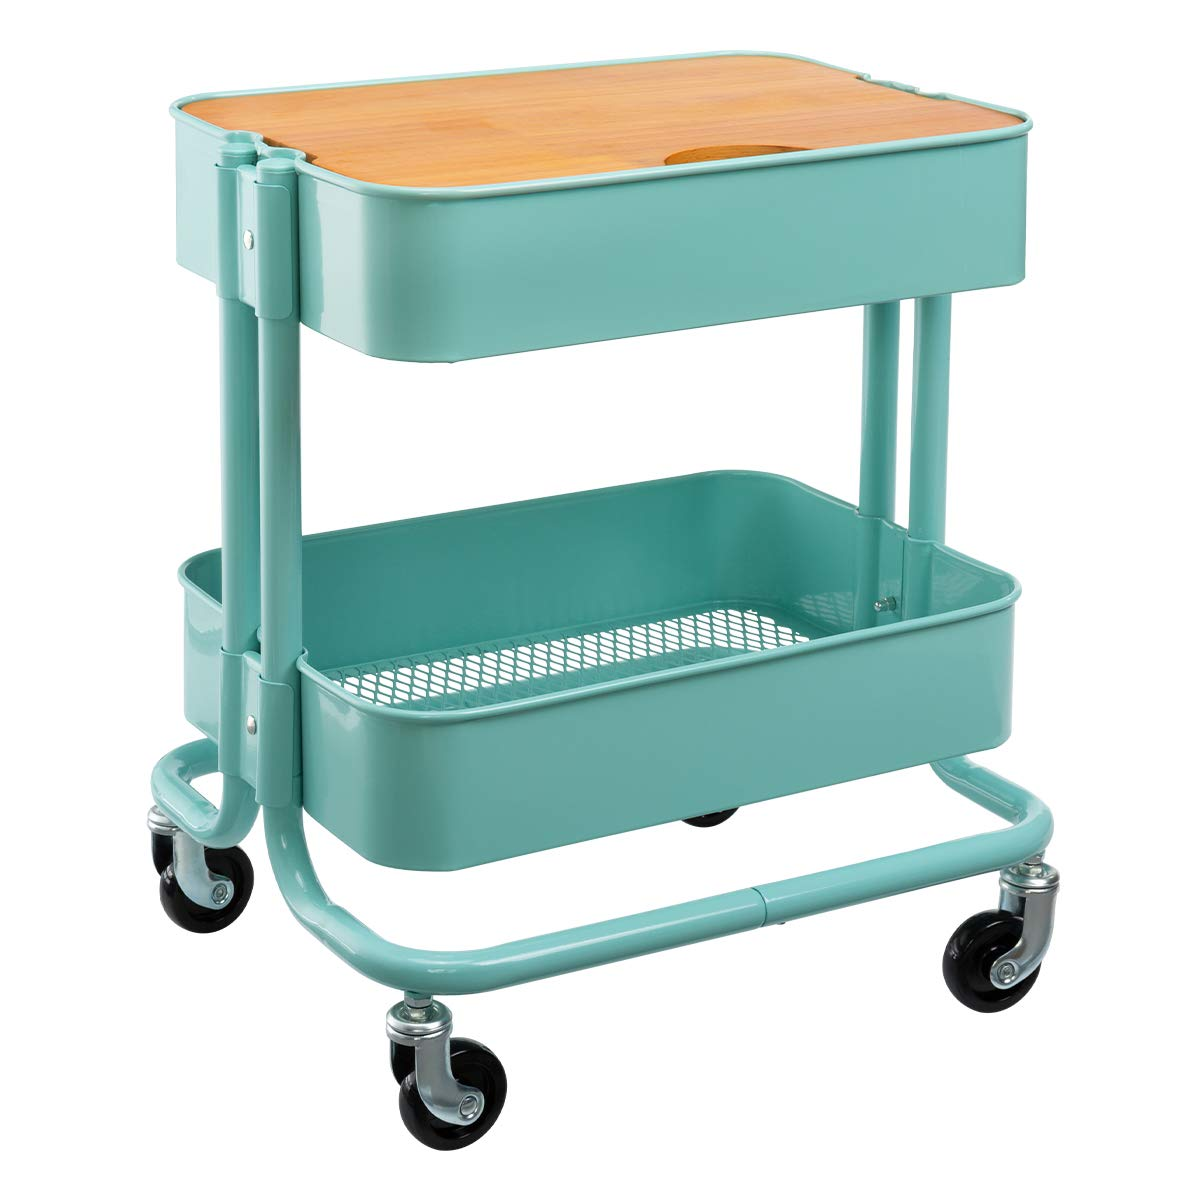 HollyHOME 2-Tier Metal Utility Service Cart Rolling Storage Shelves with Planks,Movable Storage Utility Cart, Blue by HollyHOME